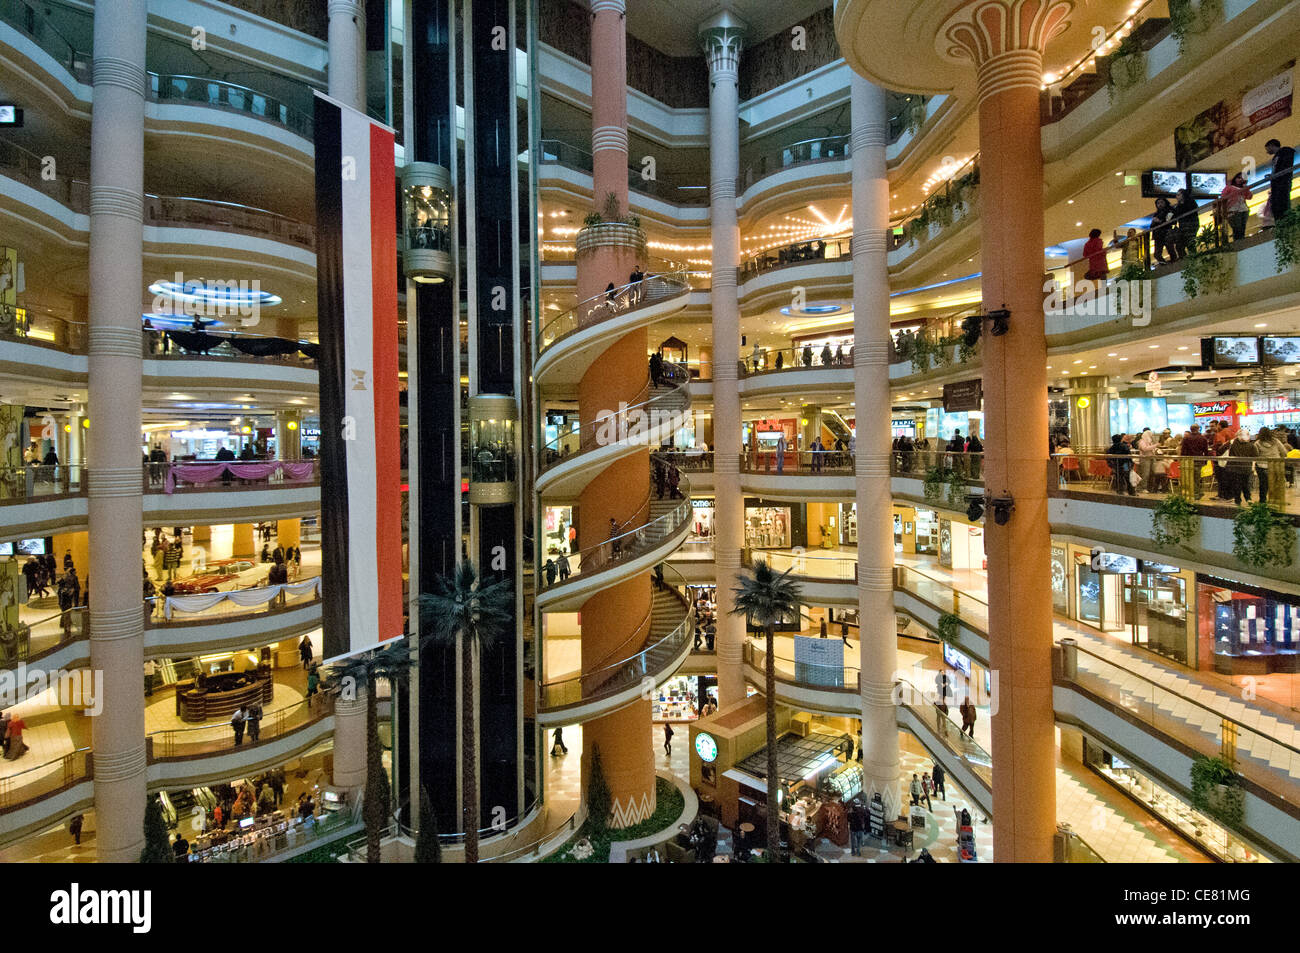 City Star Malls In Heliopolis Cairo Is The Largest Mall In